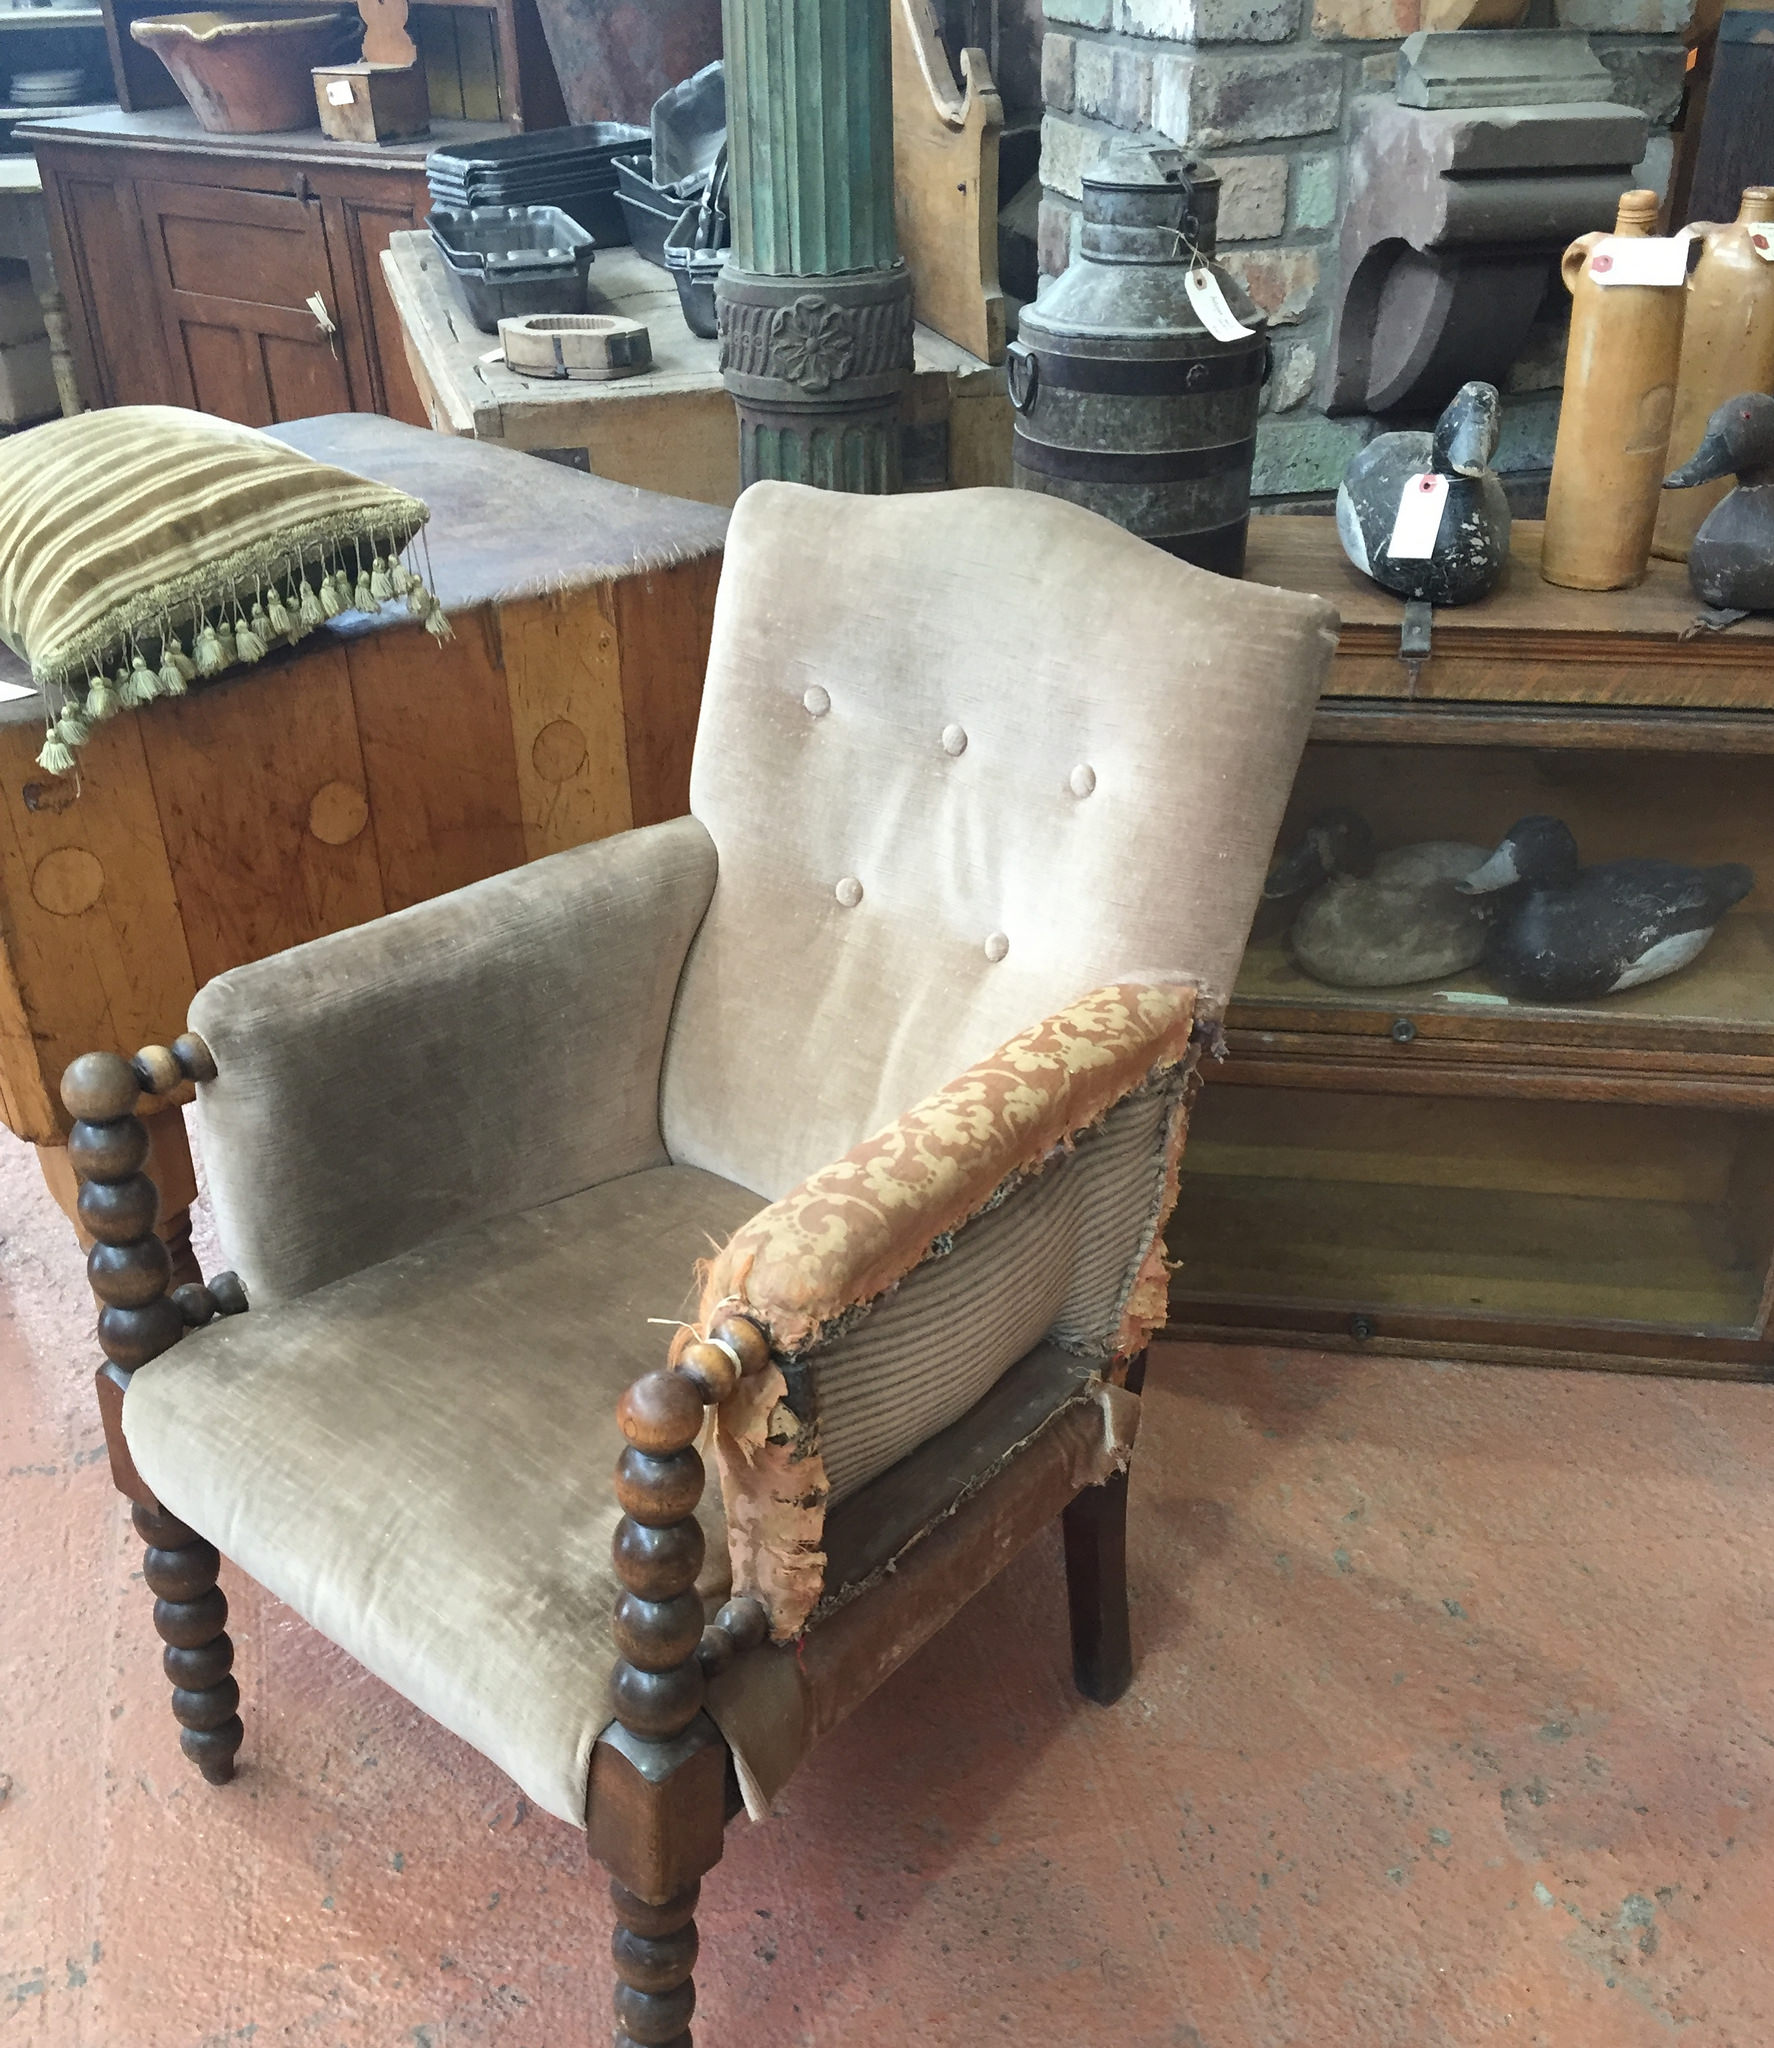 original chair from England